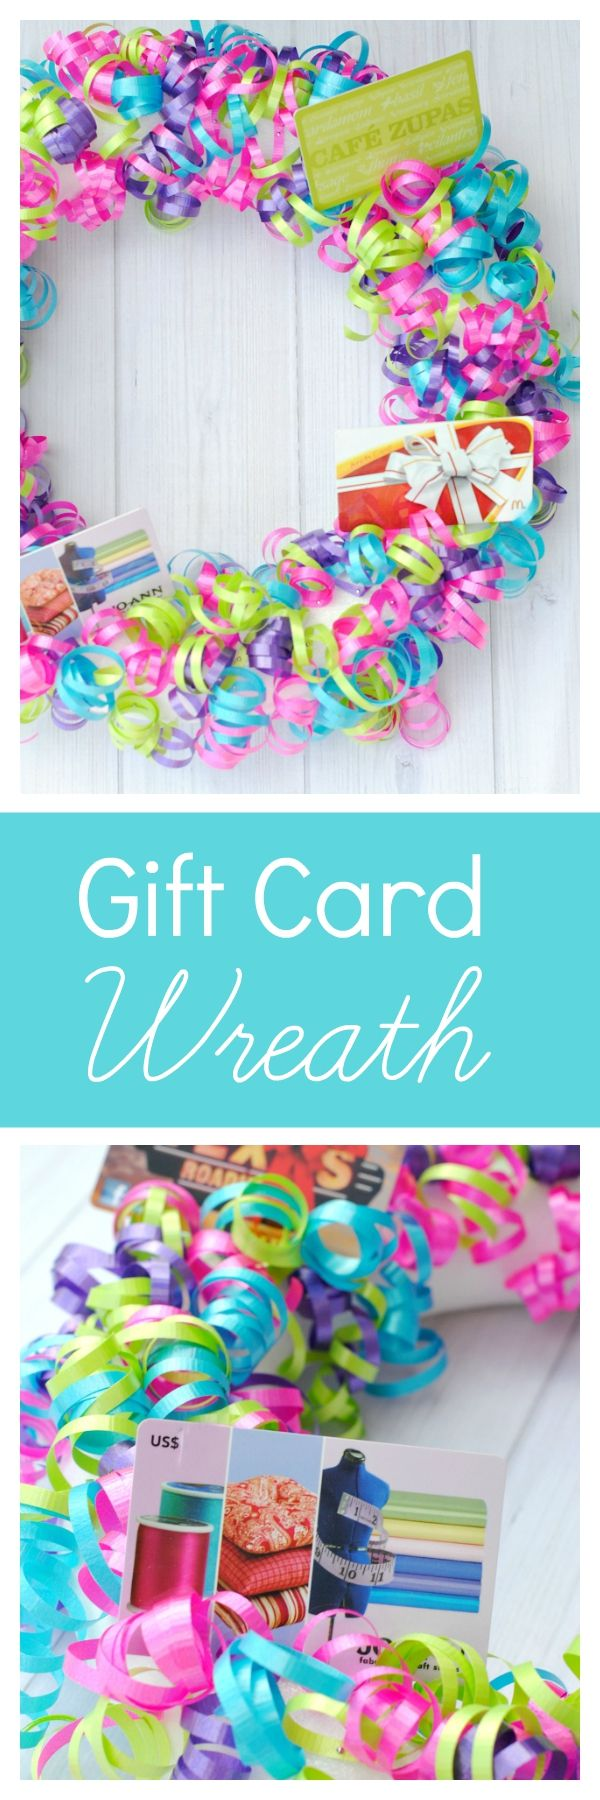 Birthday Gifts Creative Gift Card Ideas This Gift Card Wreath Is A Super Fun Way To Give Gift C My Gifts List Leading Gifts Inspiration Magazine Gift Ideas For Everyone